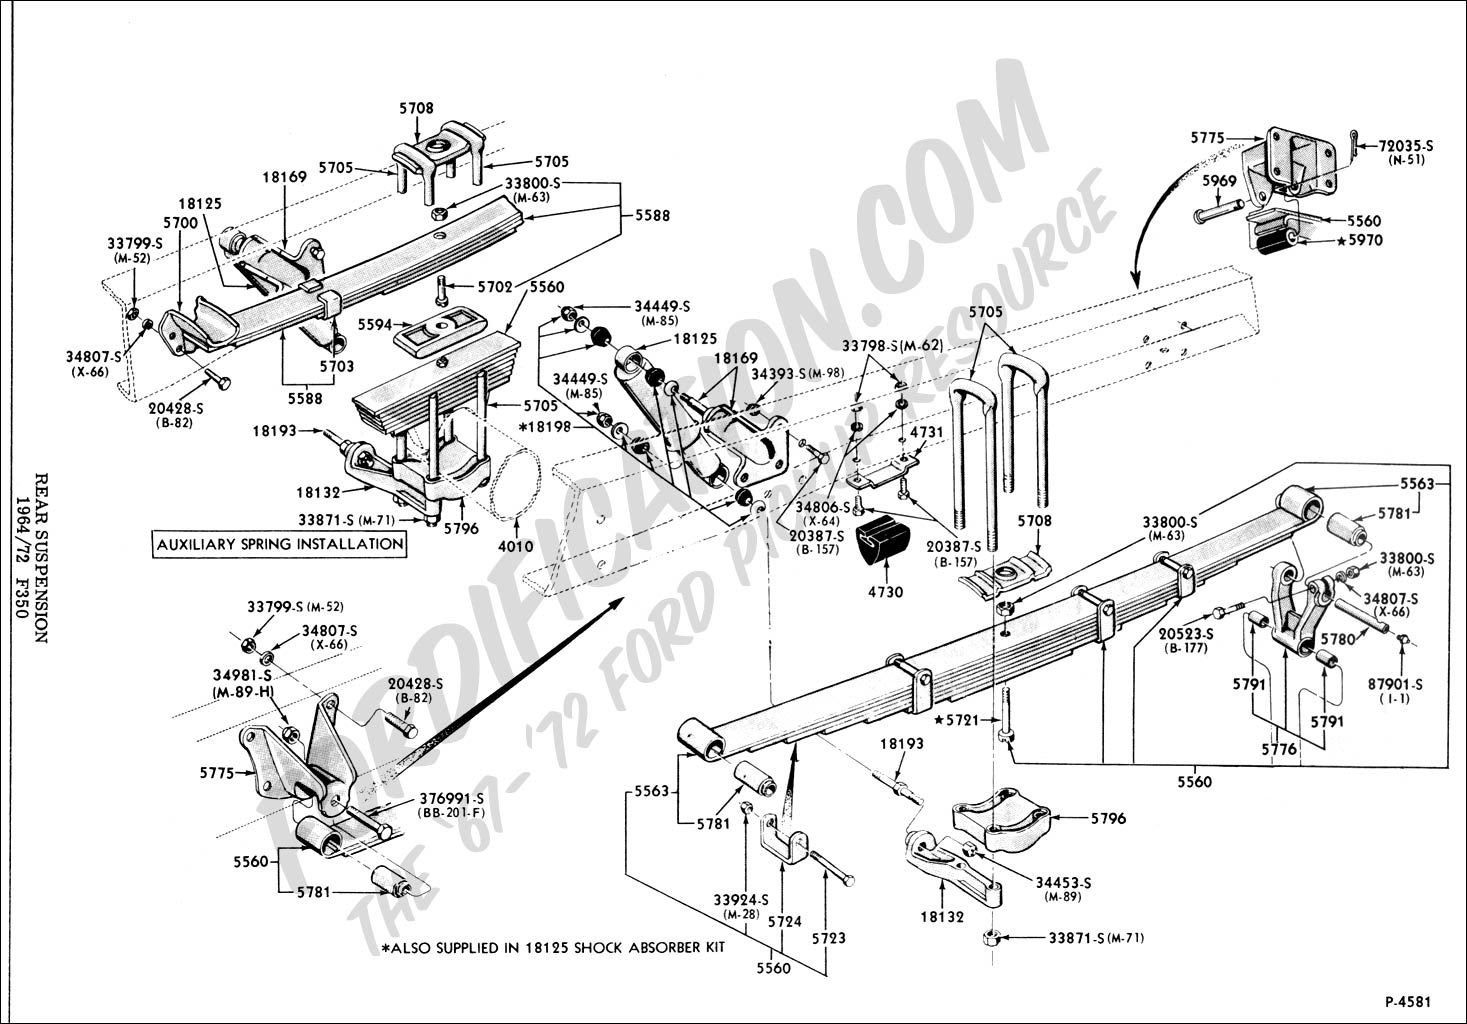 hight resolution of ford f 350 parts diagram wiring diagram2001 ford f350 parts diagram diagram data schema ford f350